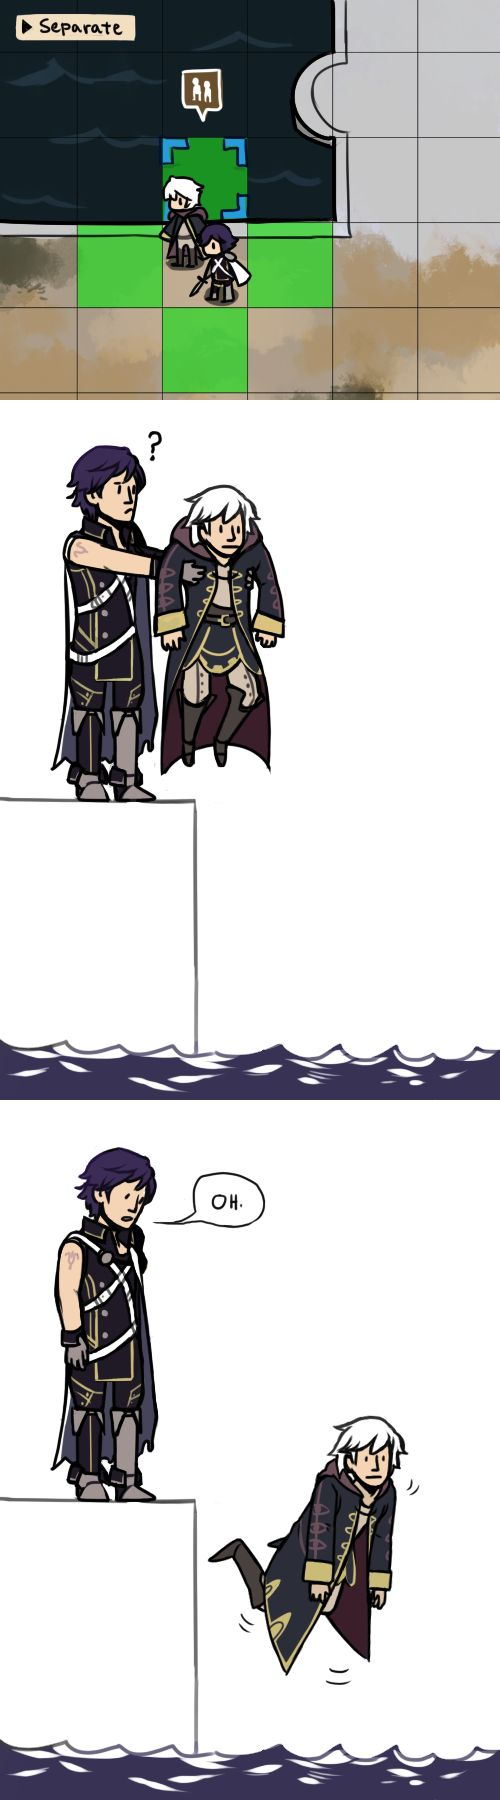 """I Wonder if My Tactician Can Fly?"" #FireEmblem"